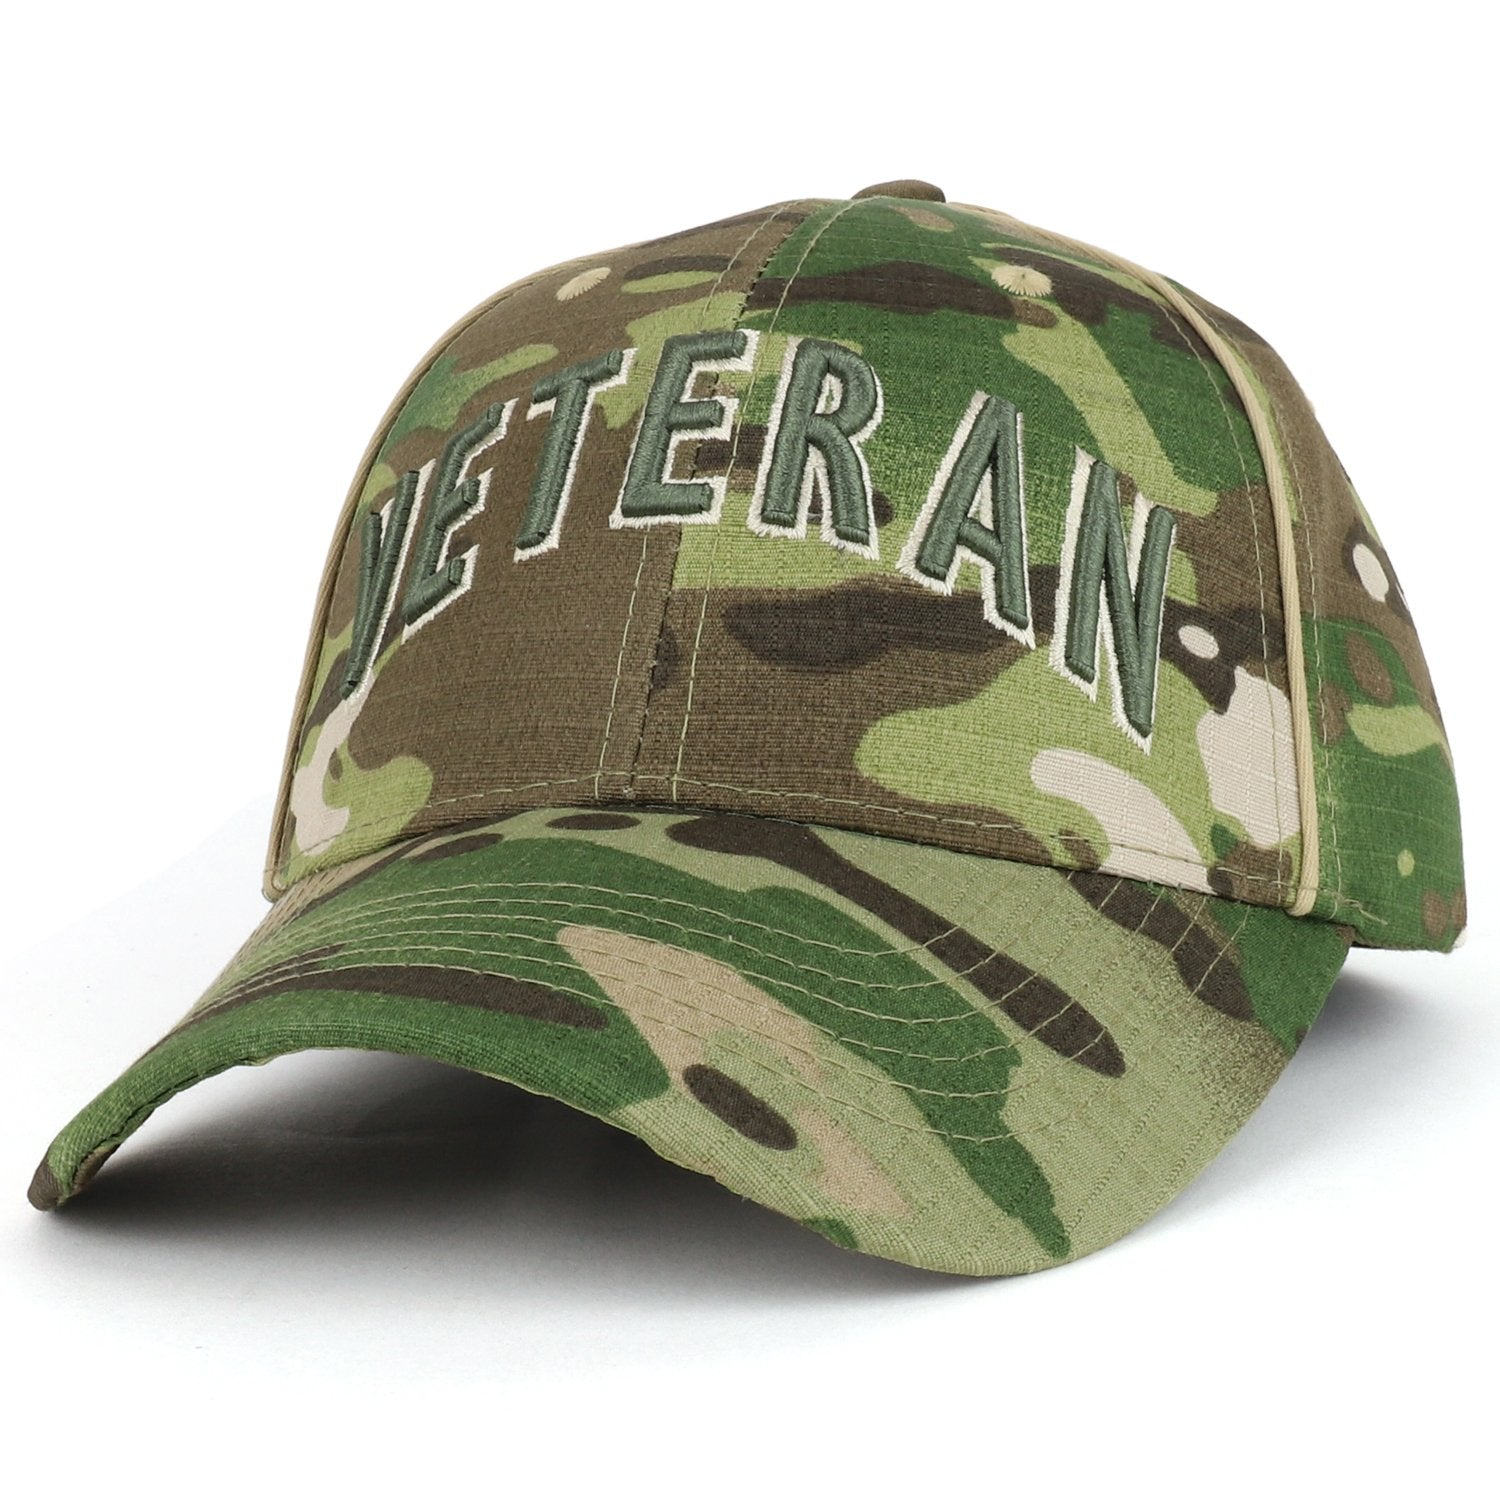 78e83893fb4 Armycrew Veteran Font 3D Embroidered Camouflage Print Structured Baseb -  Armycrew.com